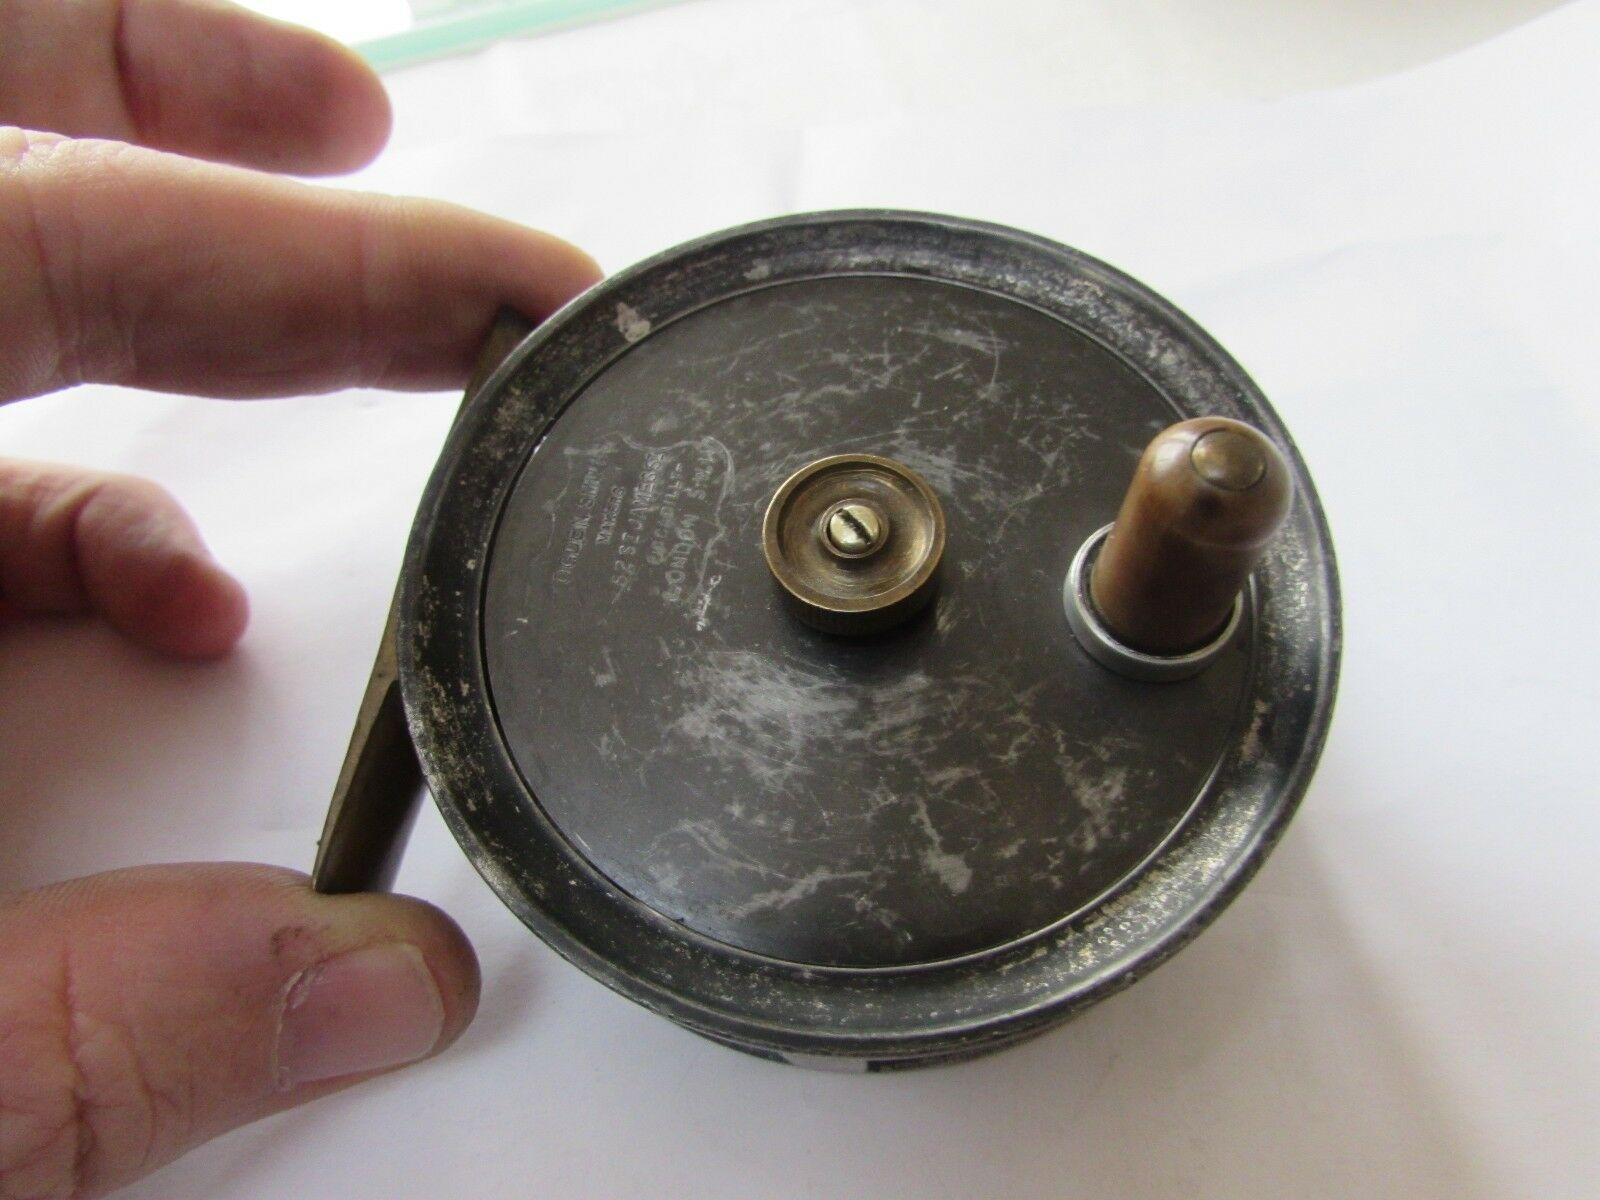 Vintage ogden smith centrebrake trout fly fishing reel built by smith + wall 3